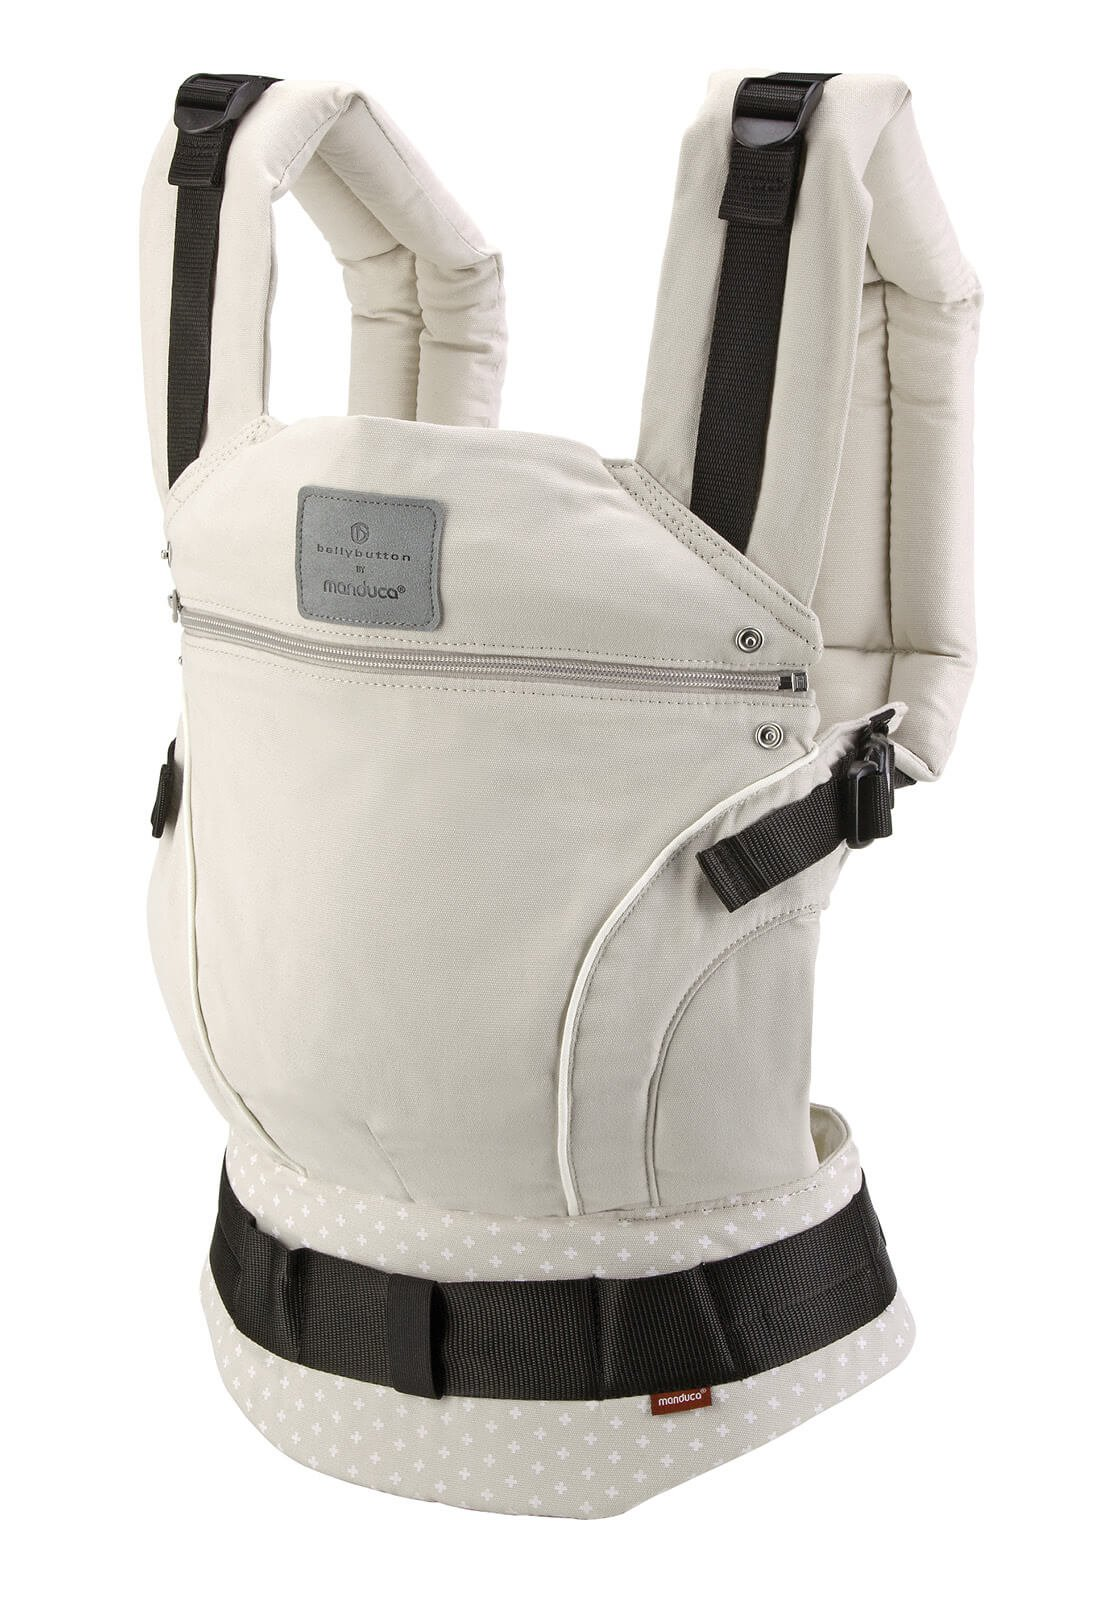 manduca First Baby Carrier > Bellybutton by manduca Edition, WildCrosses Sand < Child Carrier with Ergonomic Waist Belt & Patented Back Extension, Newborn to Toddler Manduca The anatomical shape of your belt makes all the weight to be on the hip, while the back, neck or shoulders of the person who takes padezcan The Manduca 222 Backpack allows you to position the child in front, behind or on the hip, always looking at the person who takes you The backpack also features a concealed hood and shades that can be to child's head when sleeping or to protect it from the sun and rain 4